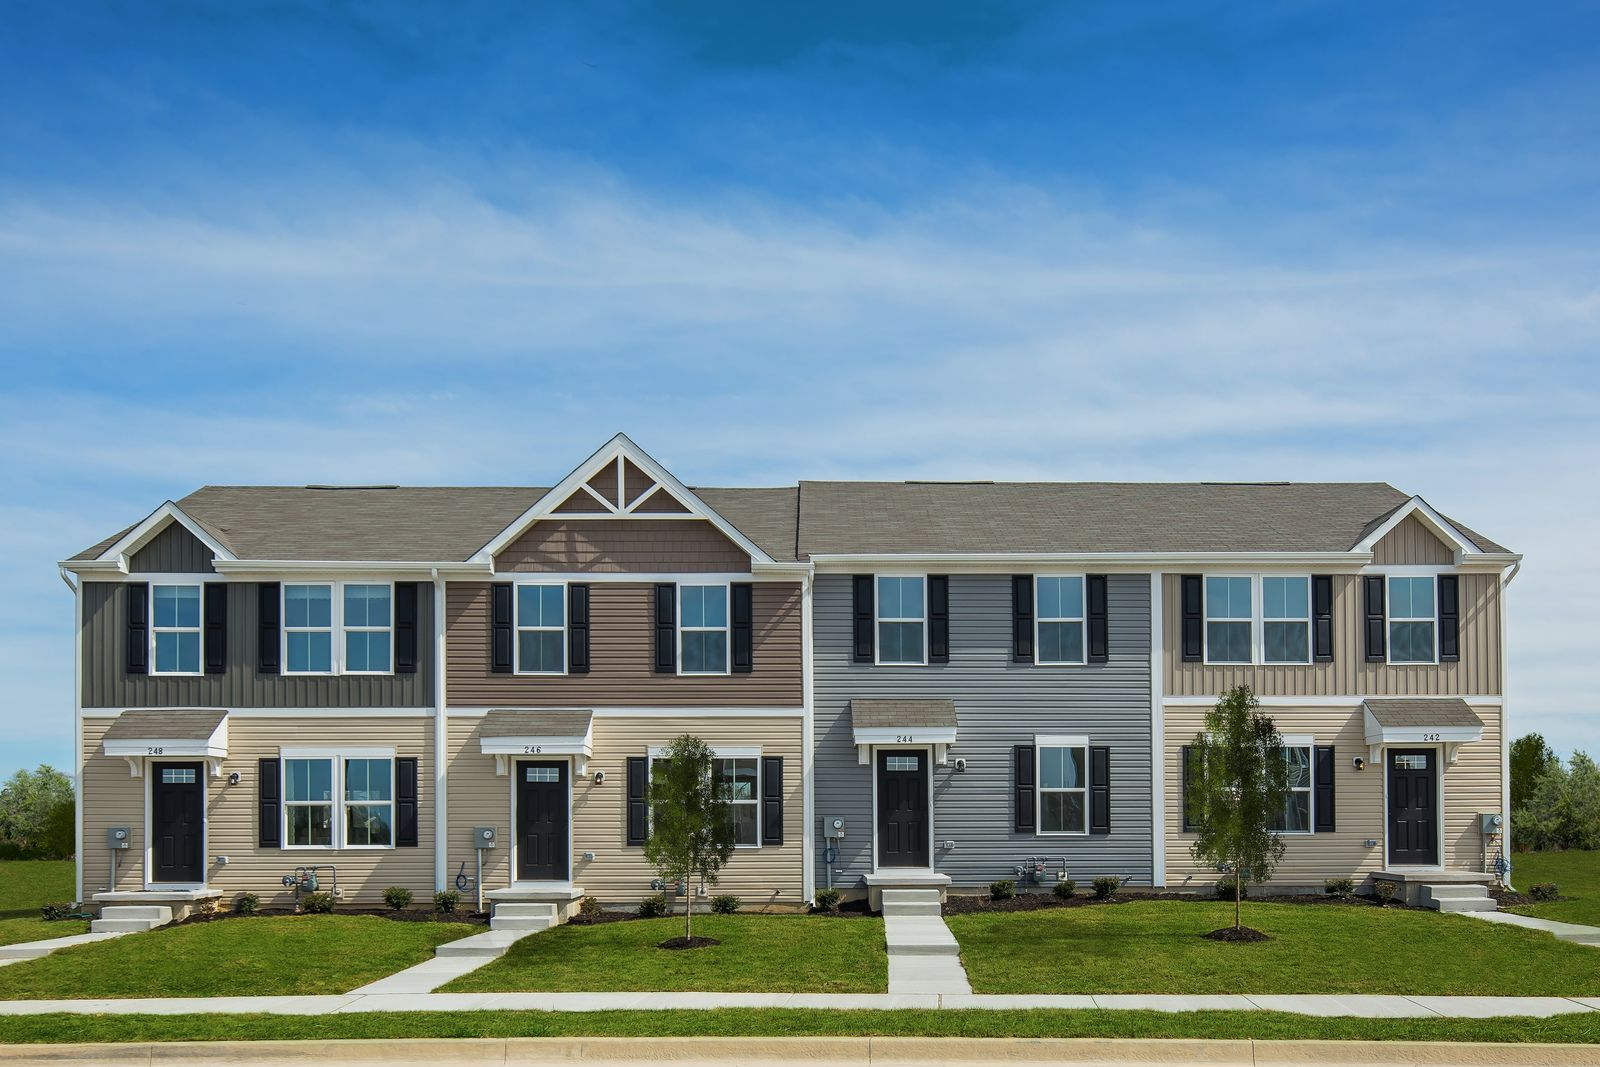 THORNTON GROVE TOWNHOMES - COMING SPRING 2021:Finally own for the same or less than what you're paying in rent! Brand new, low-maintenance townhomes only 8 miles to downtown Nashville from theupper $200s.Join the VIP list today!